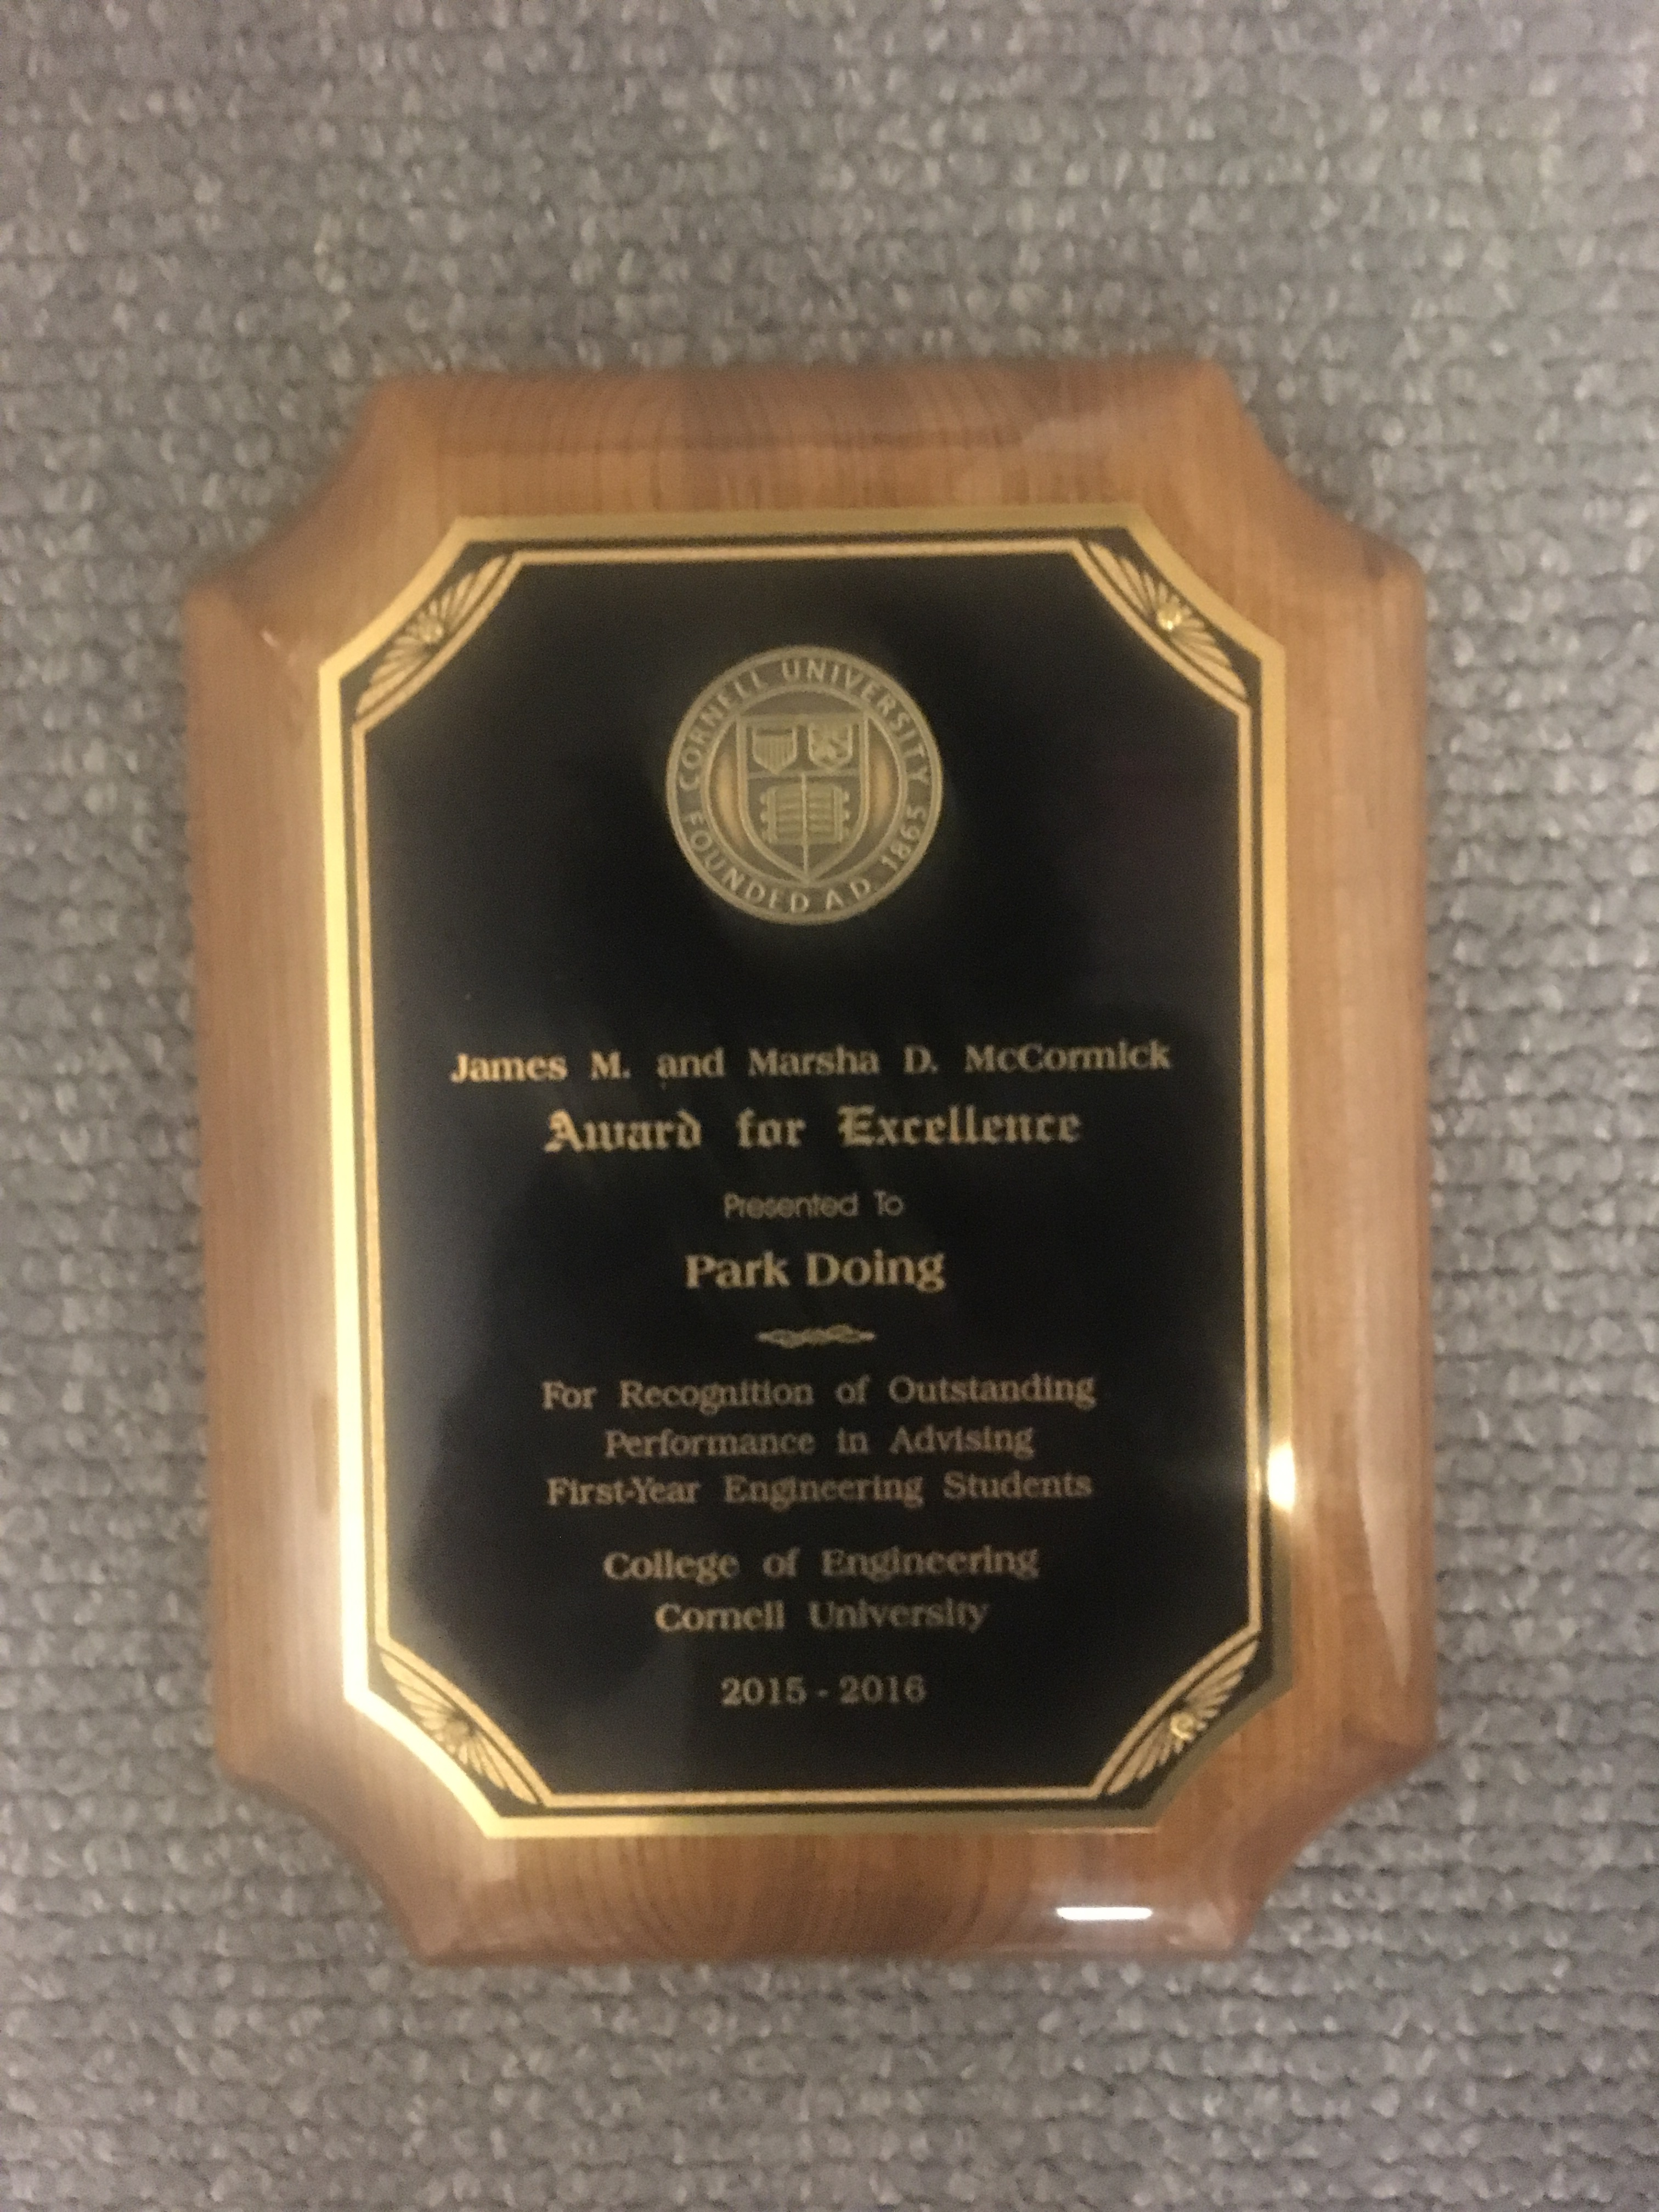 Award for Excellence Plaque